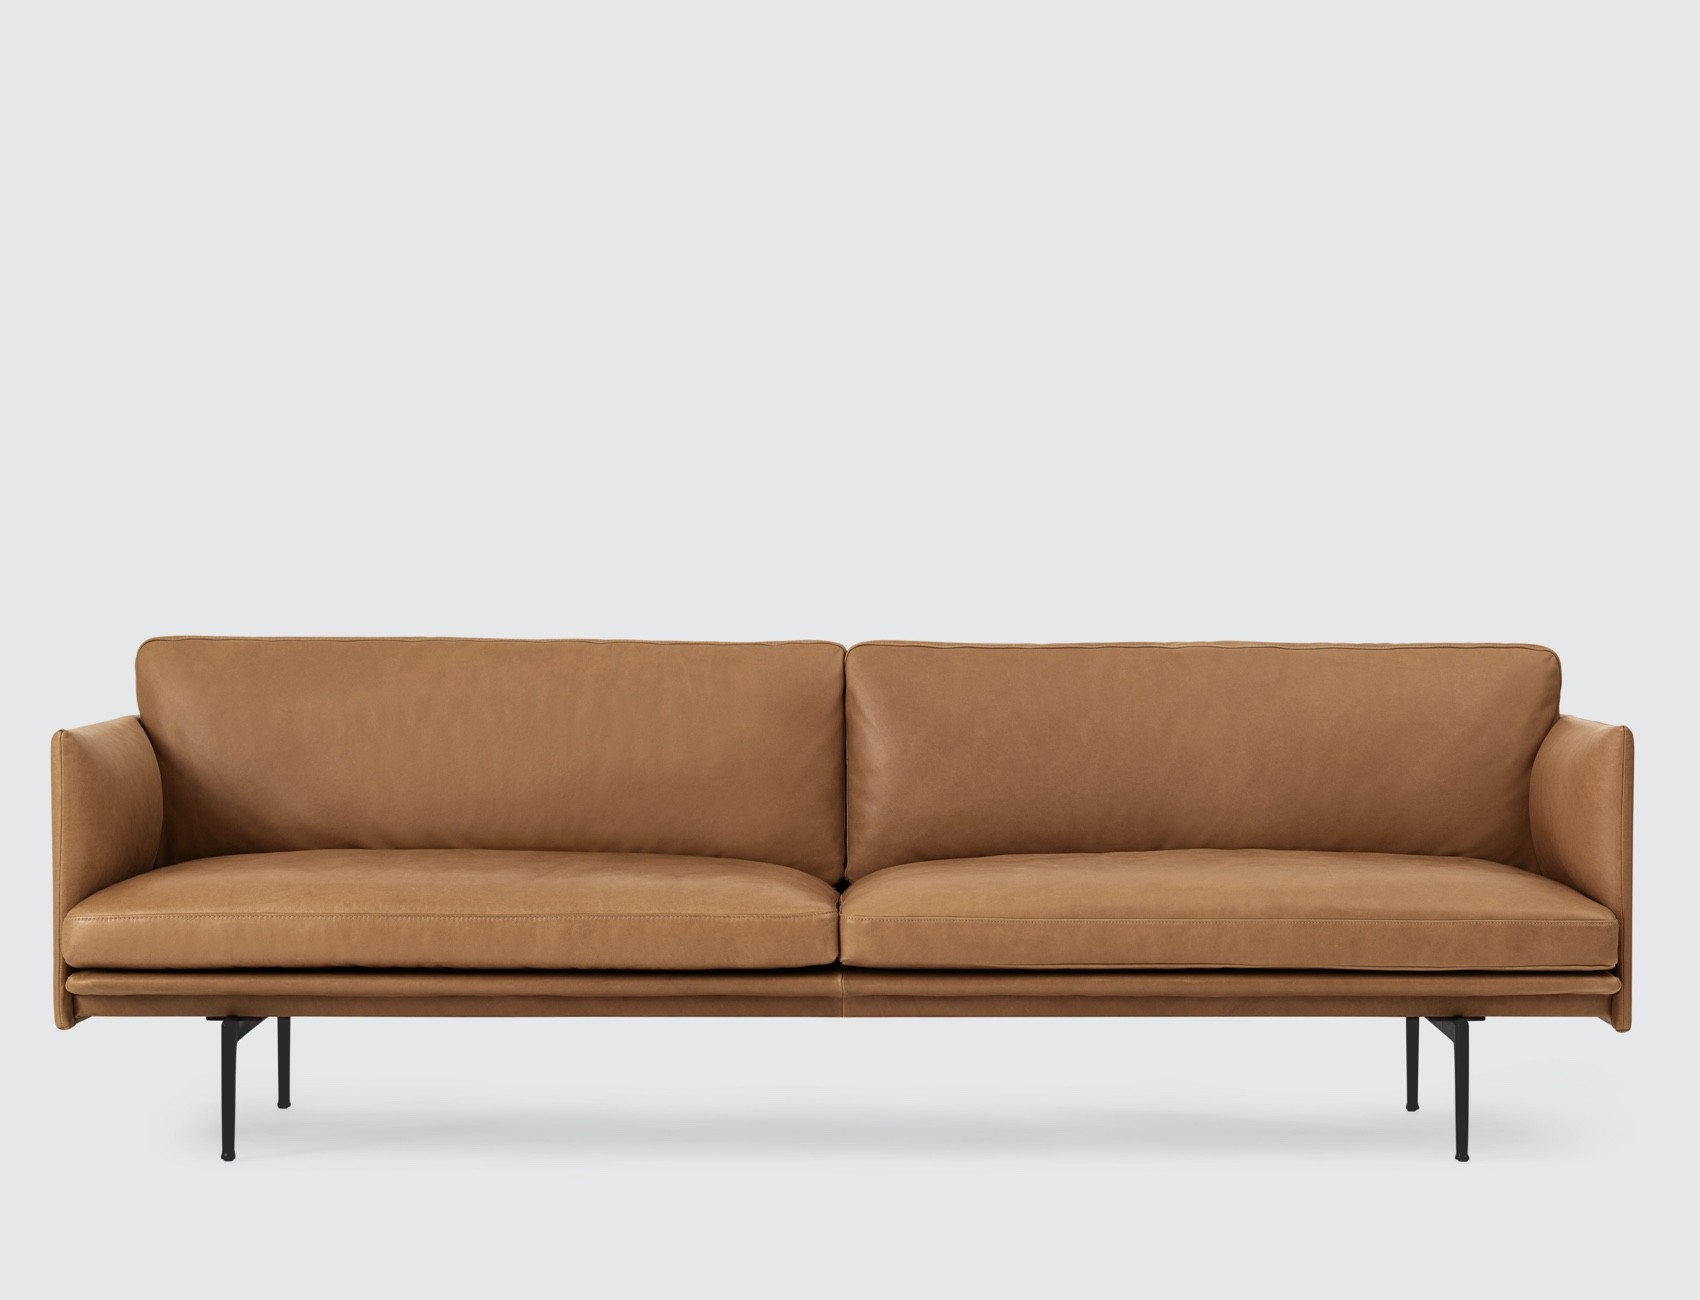 Sofa Funktion Muuto Outline Three Seater Sofa Funktion Alley